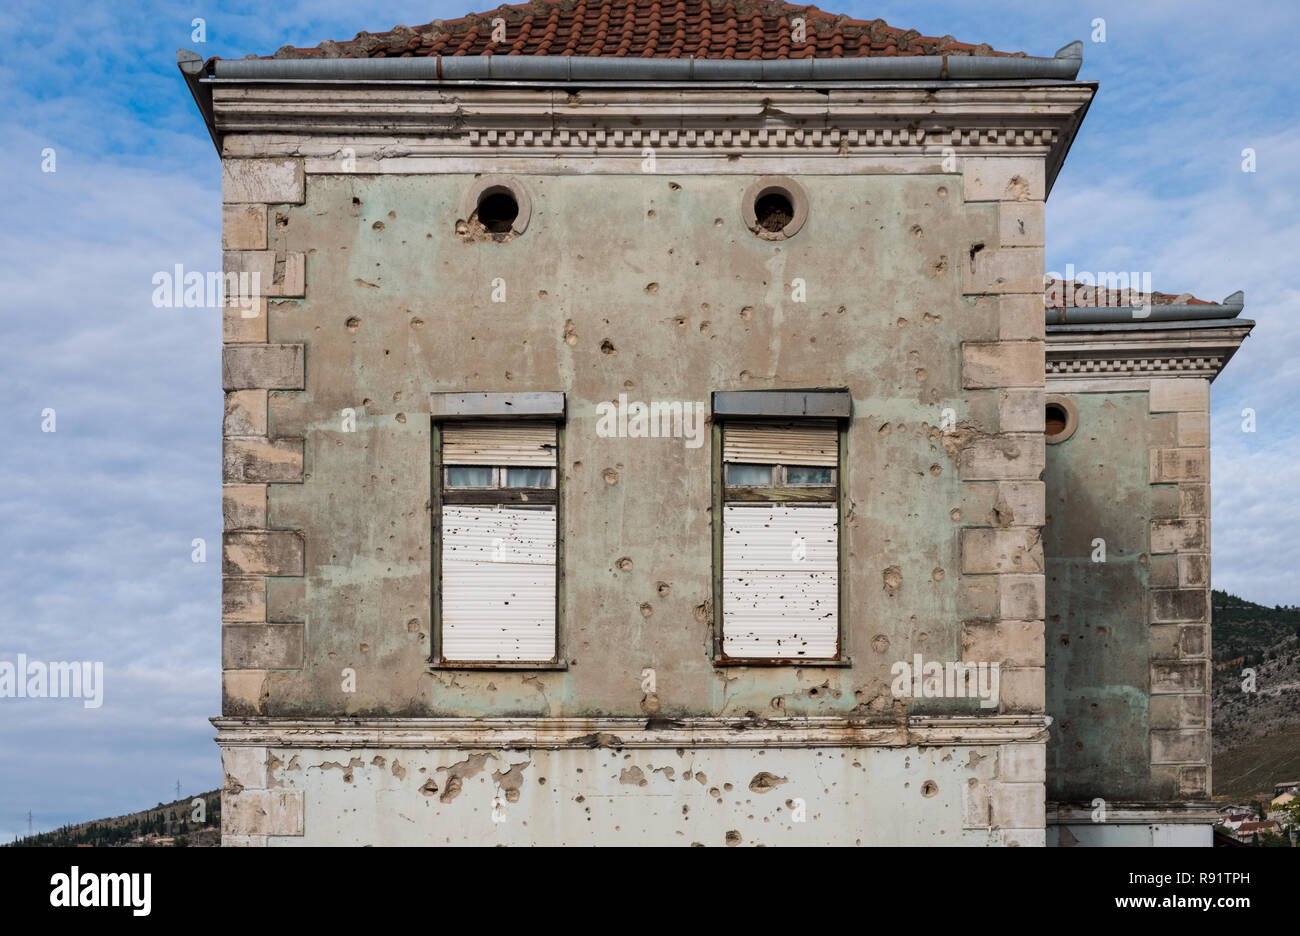 Abandoned building of Mostar still showing marks of the Bosnian war 20 years later with shrapnel and bullets holes on the faded facade - Stock Image